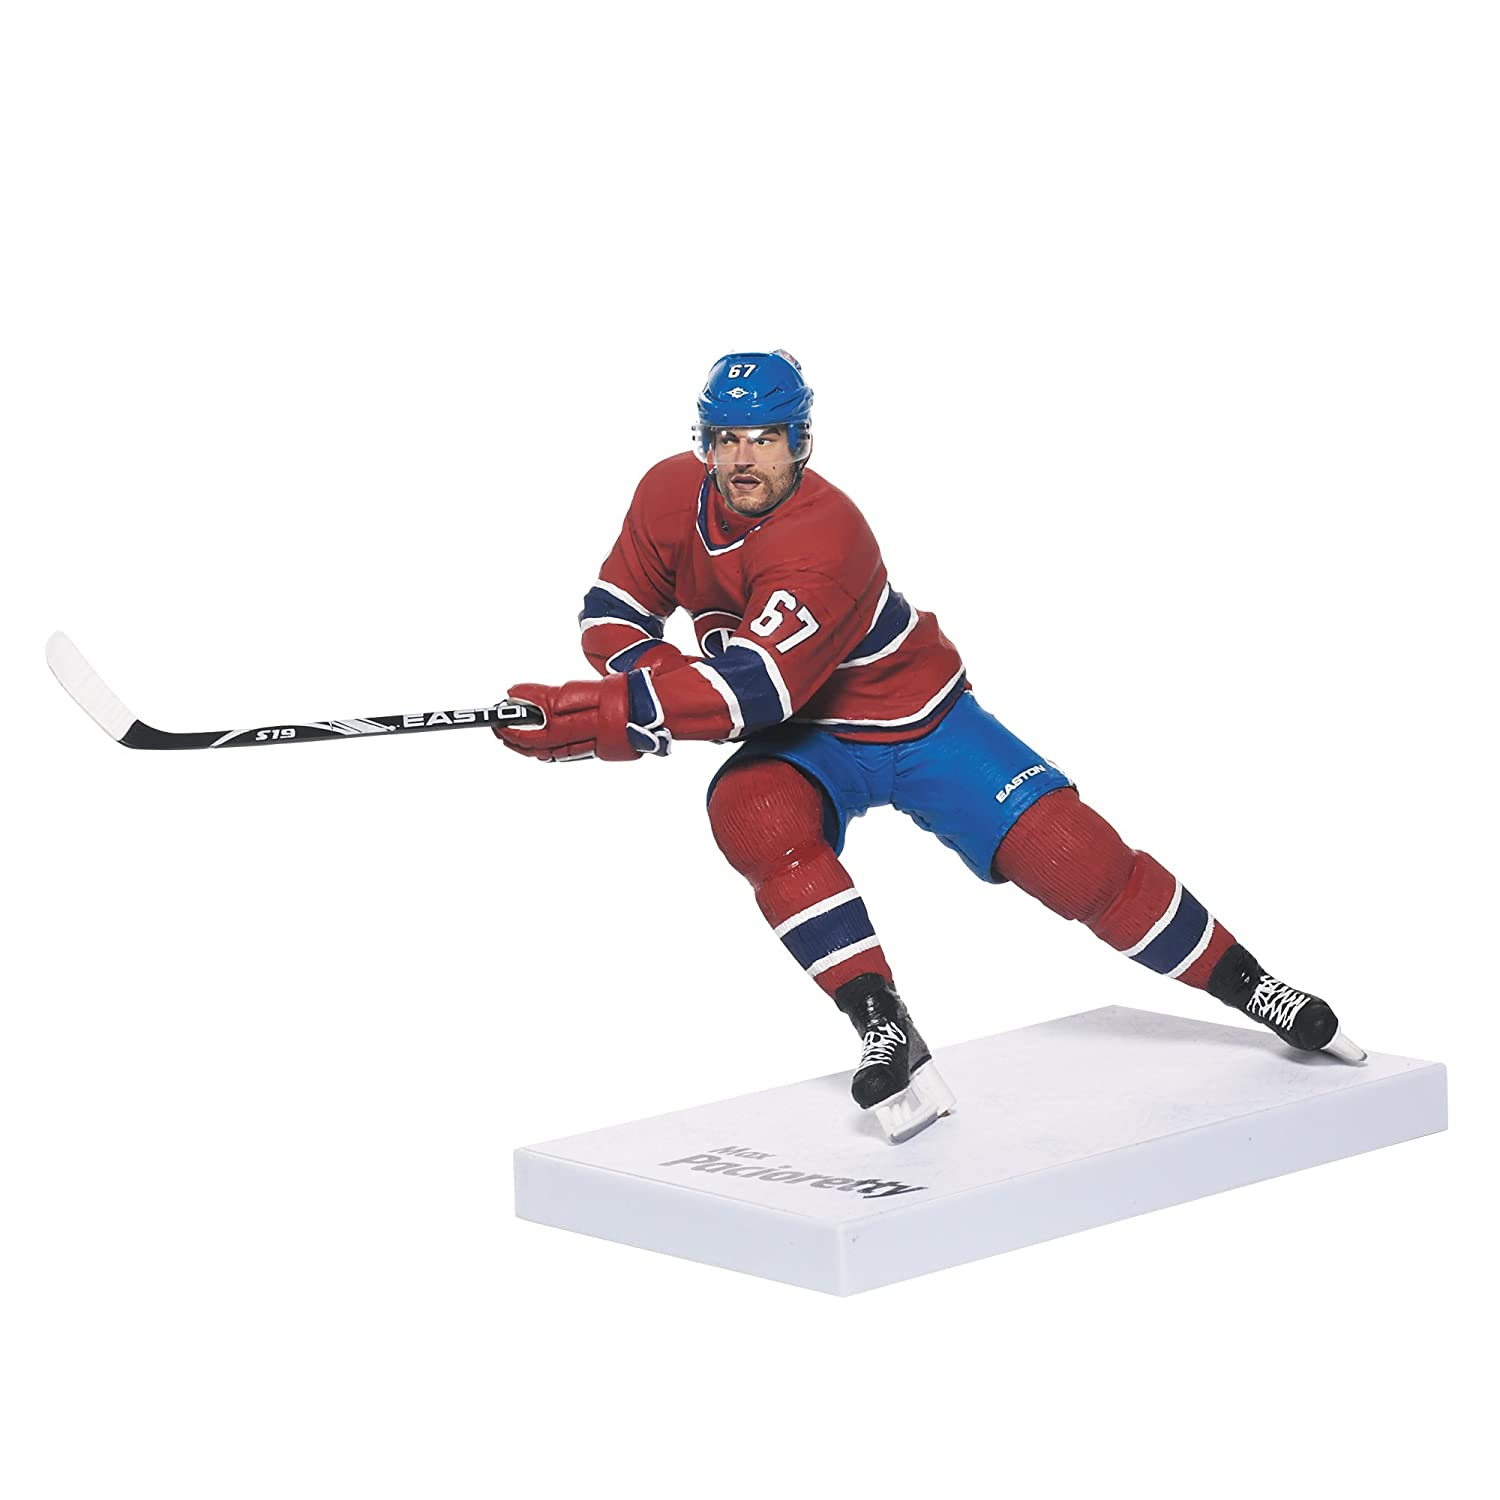 McFarlane Toys NHL Series 33 Max Pacioretty Montreal Canadiens Action Figure 77172-5